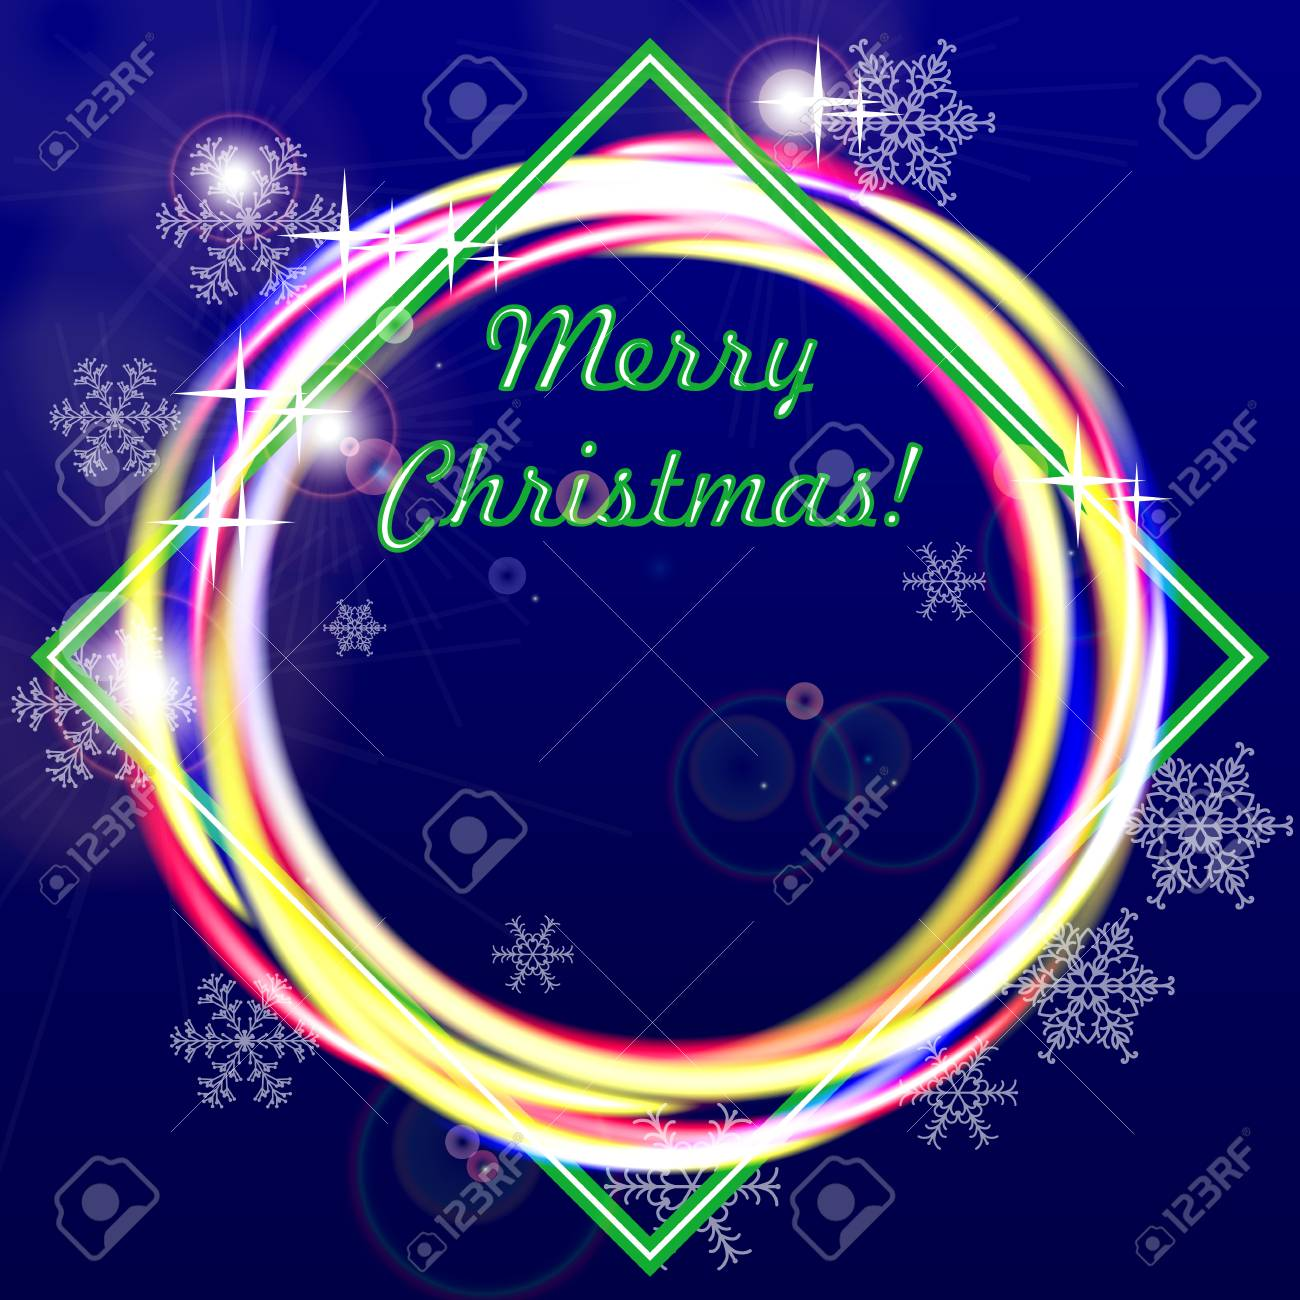 Merry Christmas greeting card or banner. Dark blue background and glowing rings. Vector illustration